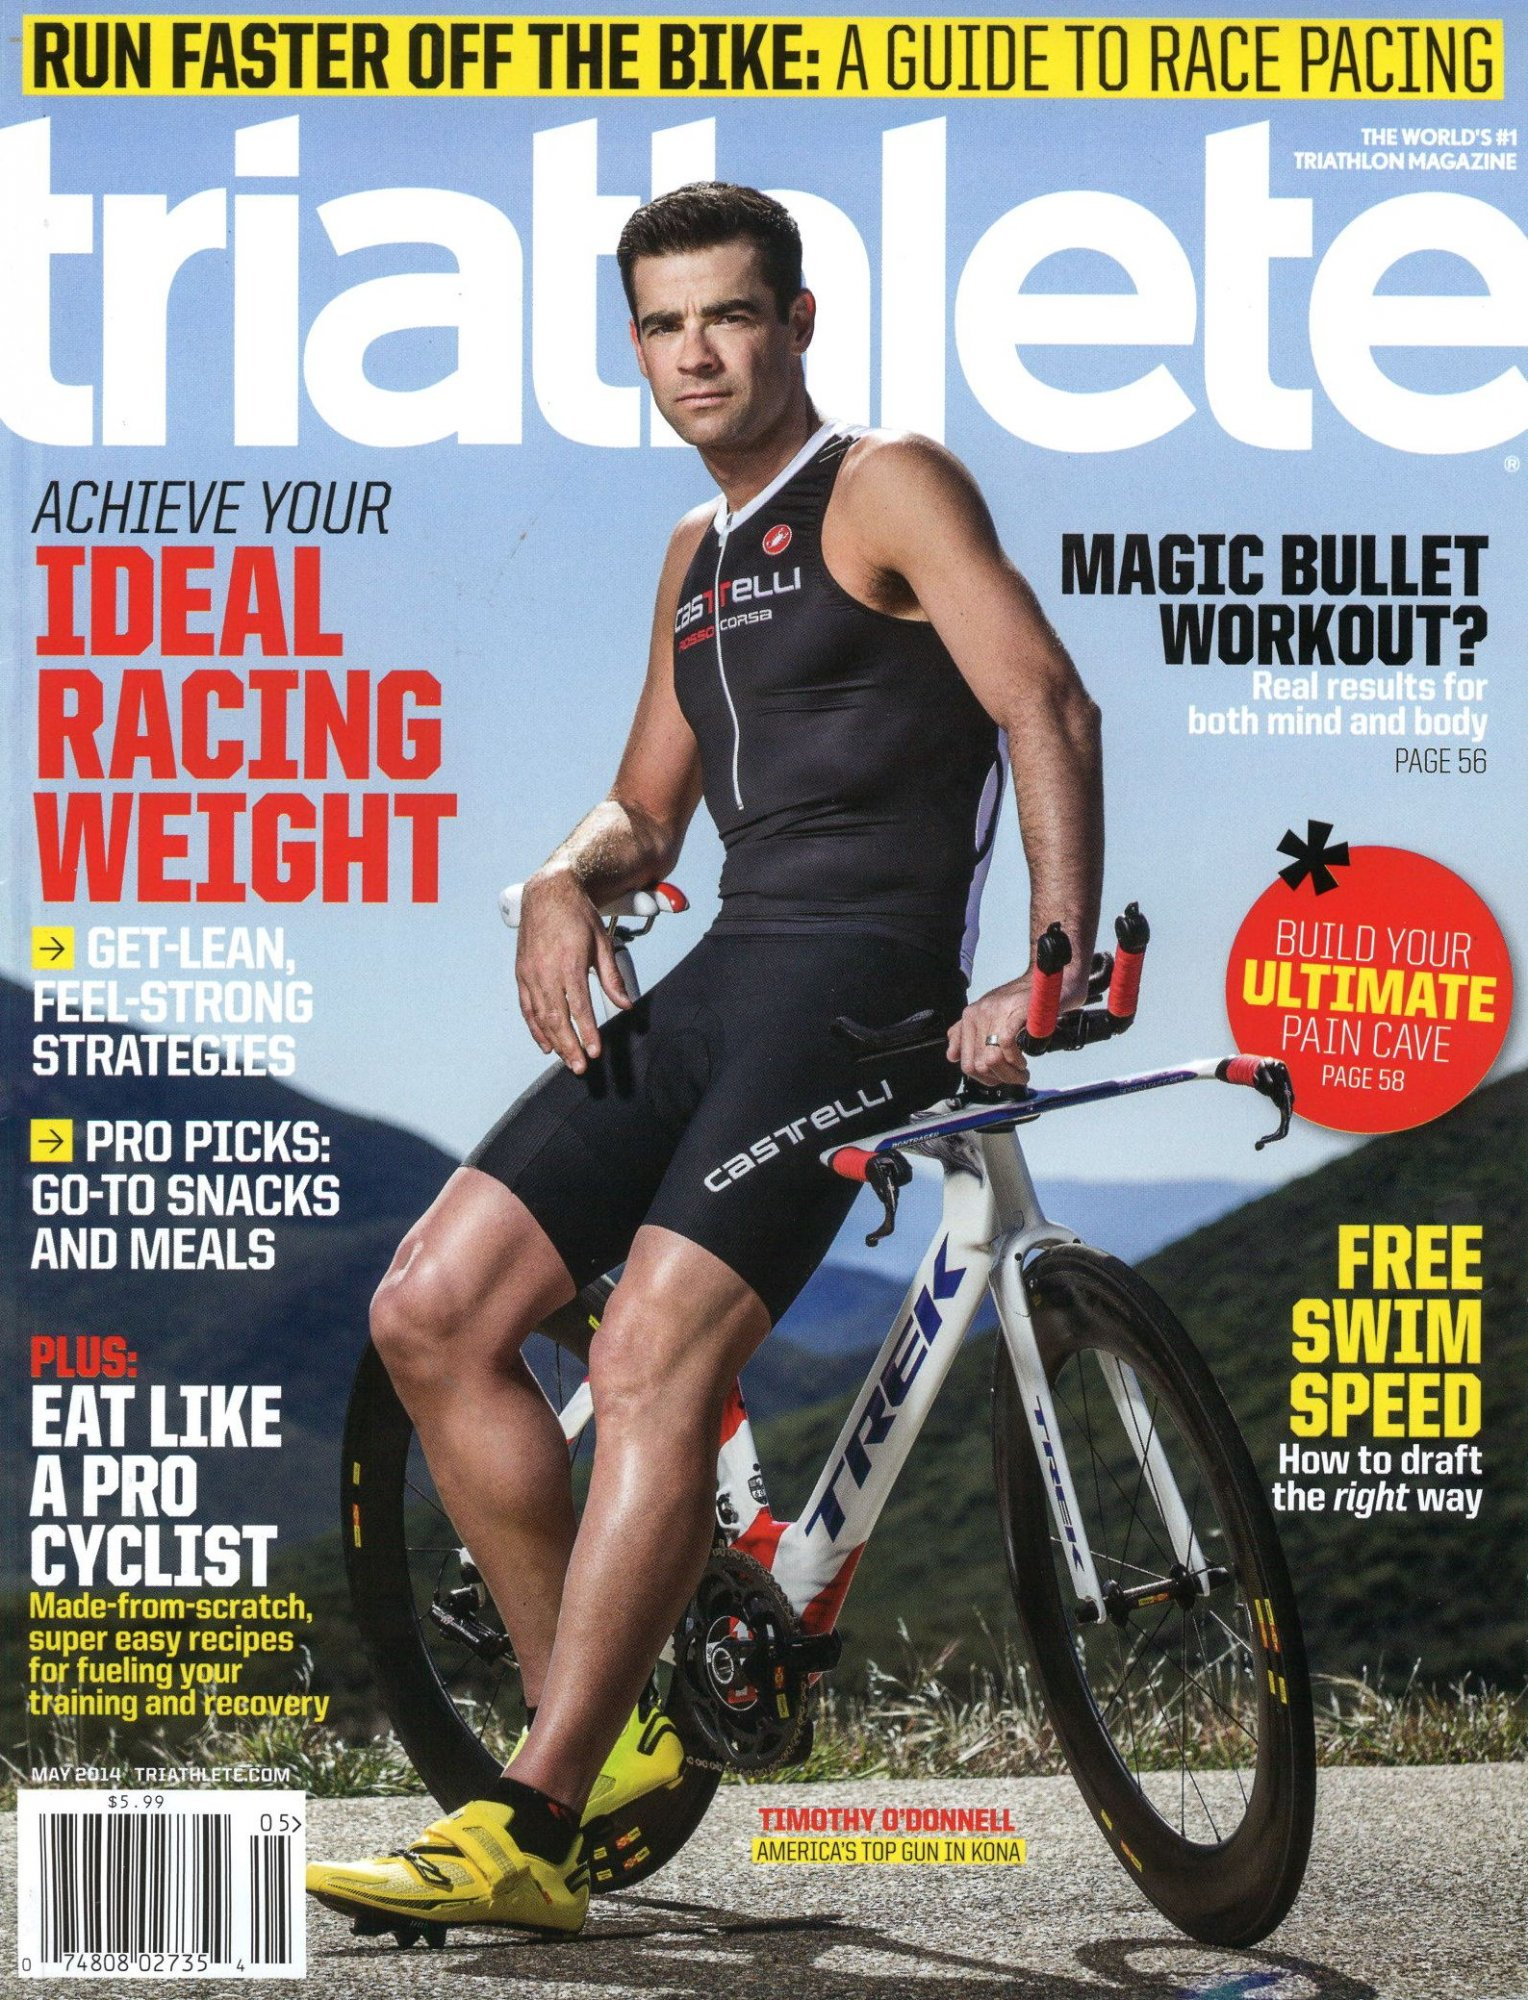 May 2014 Triathlete Cover